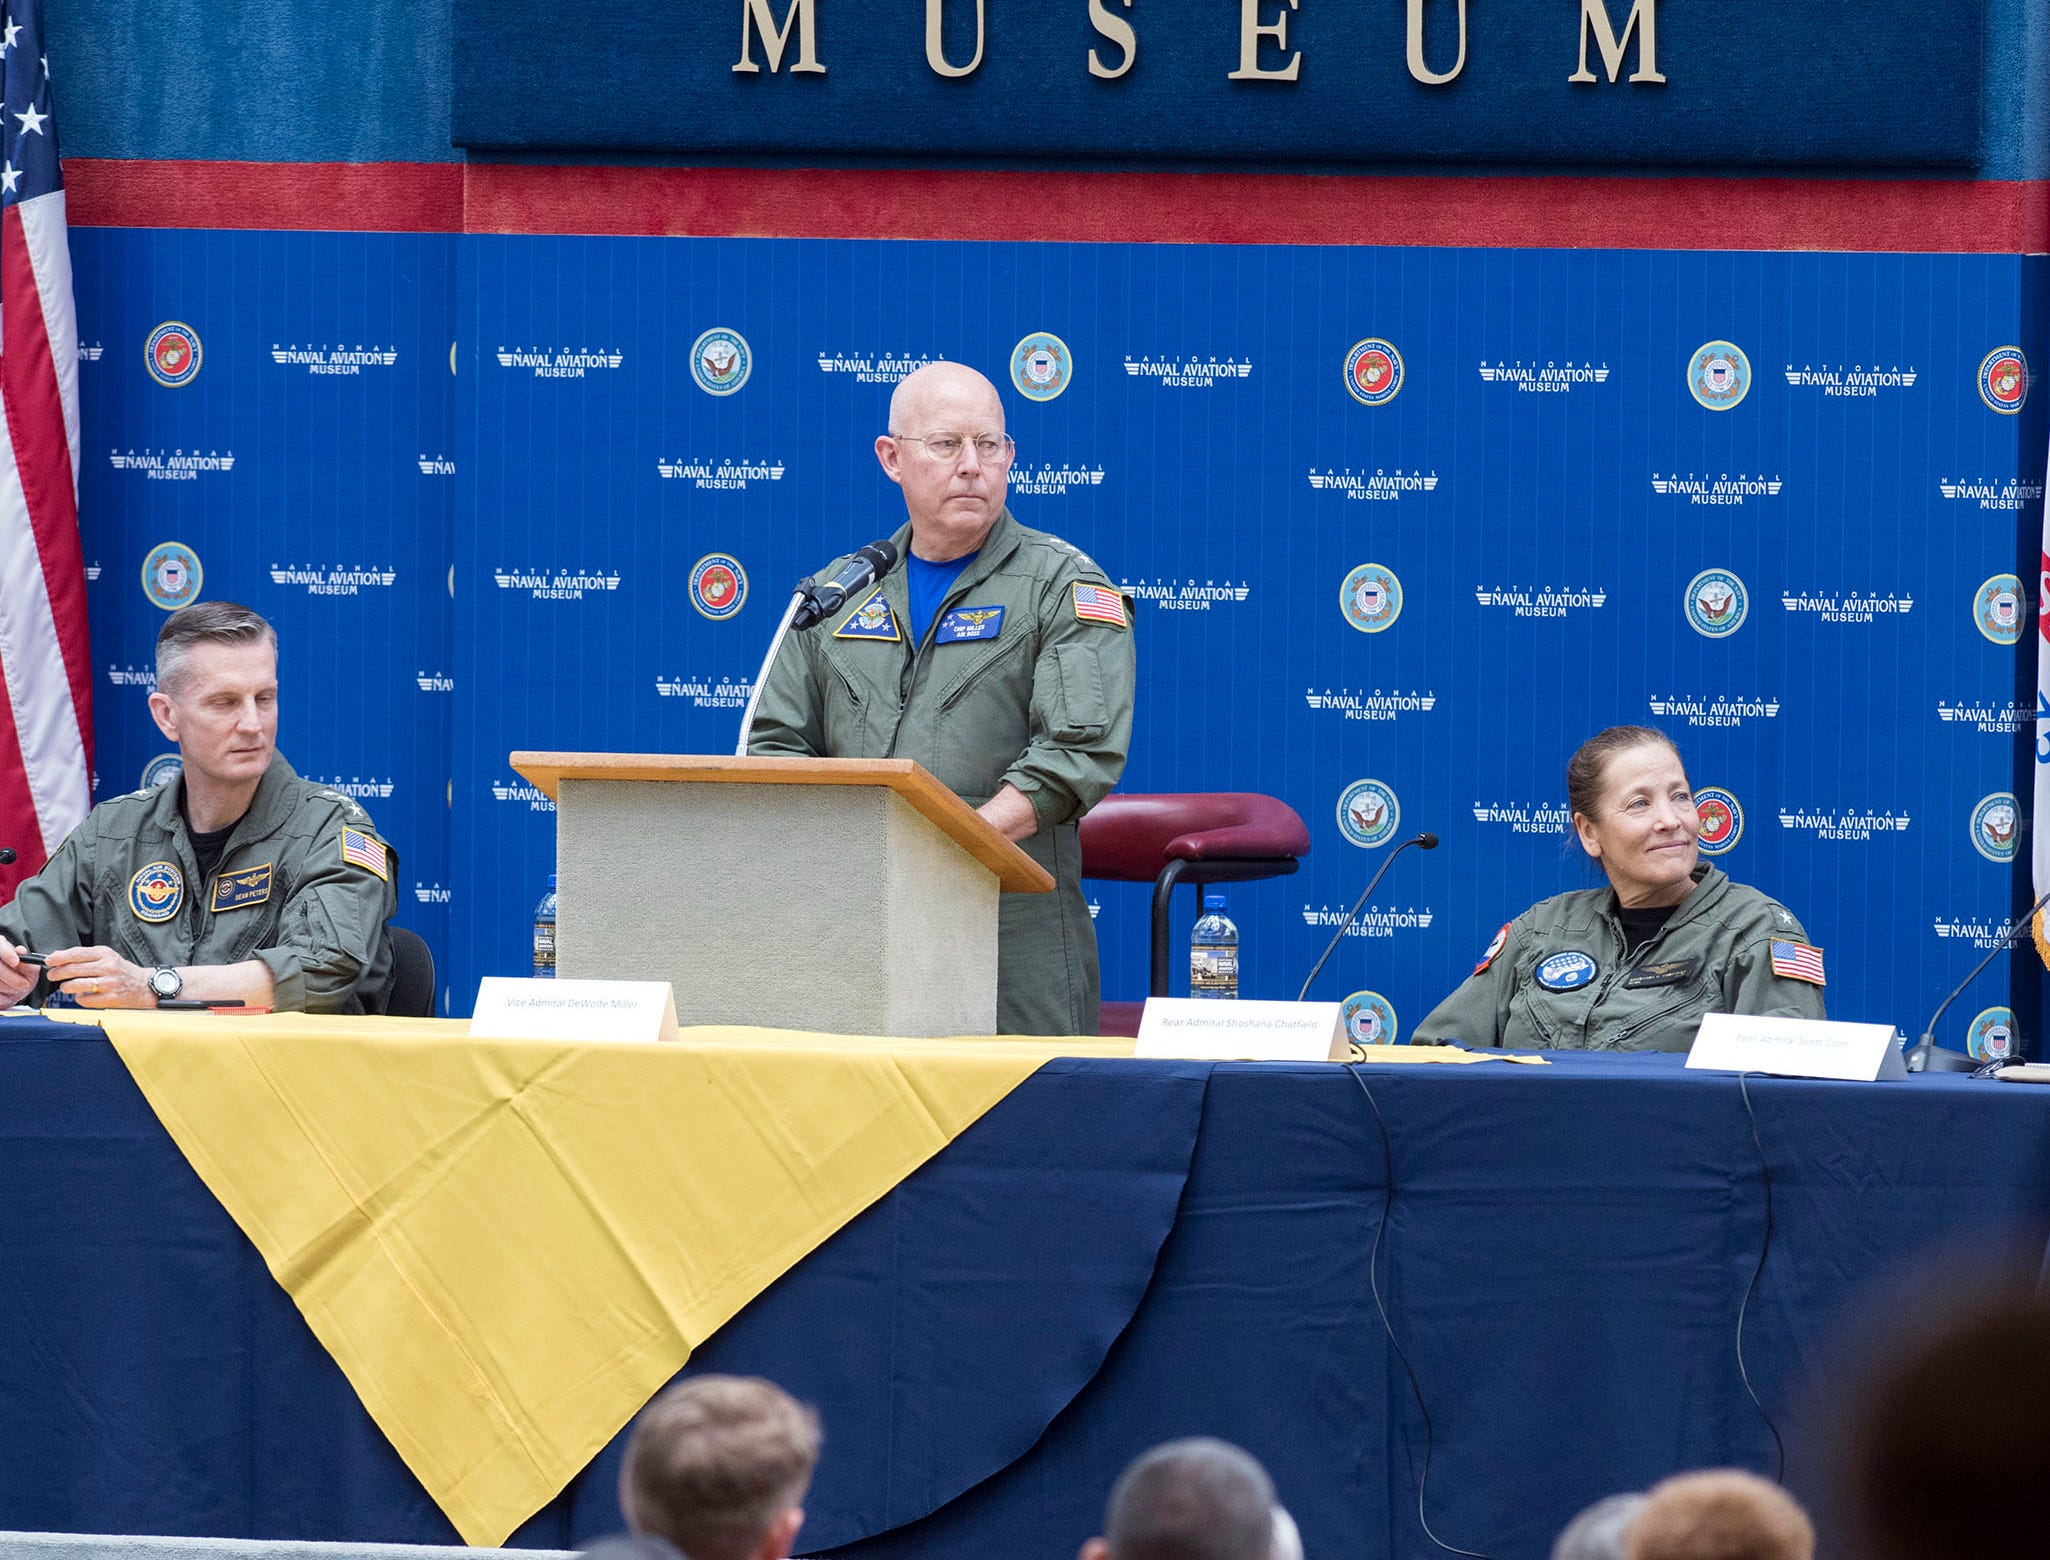 """Vice Adm. DeWolfe Miller, the commander of Naval Air Forces, leads a panel discussion on """"Naval Aviation Today and Tomorrow"""" during the annual aviation symposium at the National Naval Aviation Museum on board Naval Air Station Pensacola on Friday, May 10, 2019."""